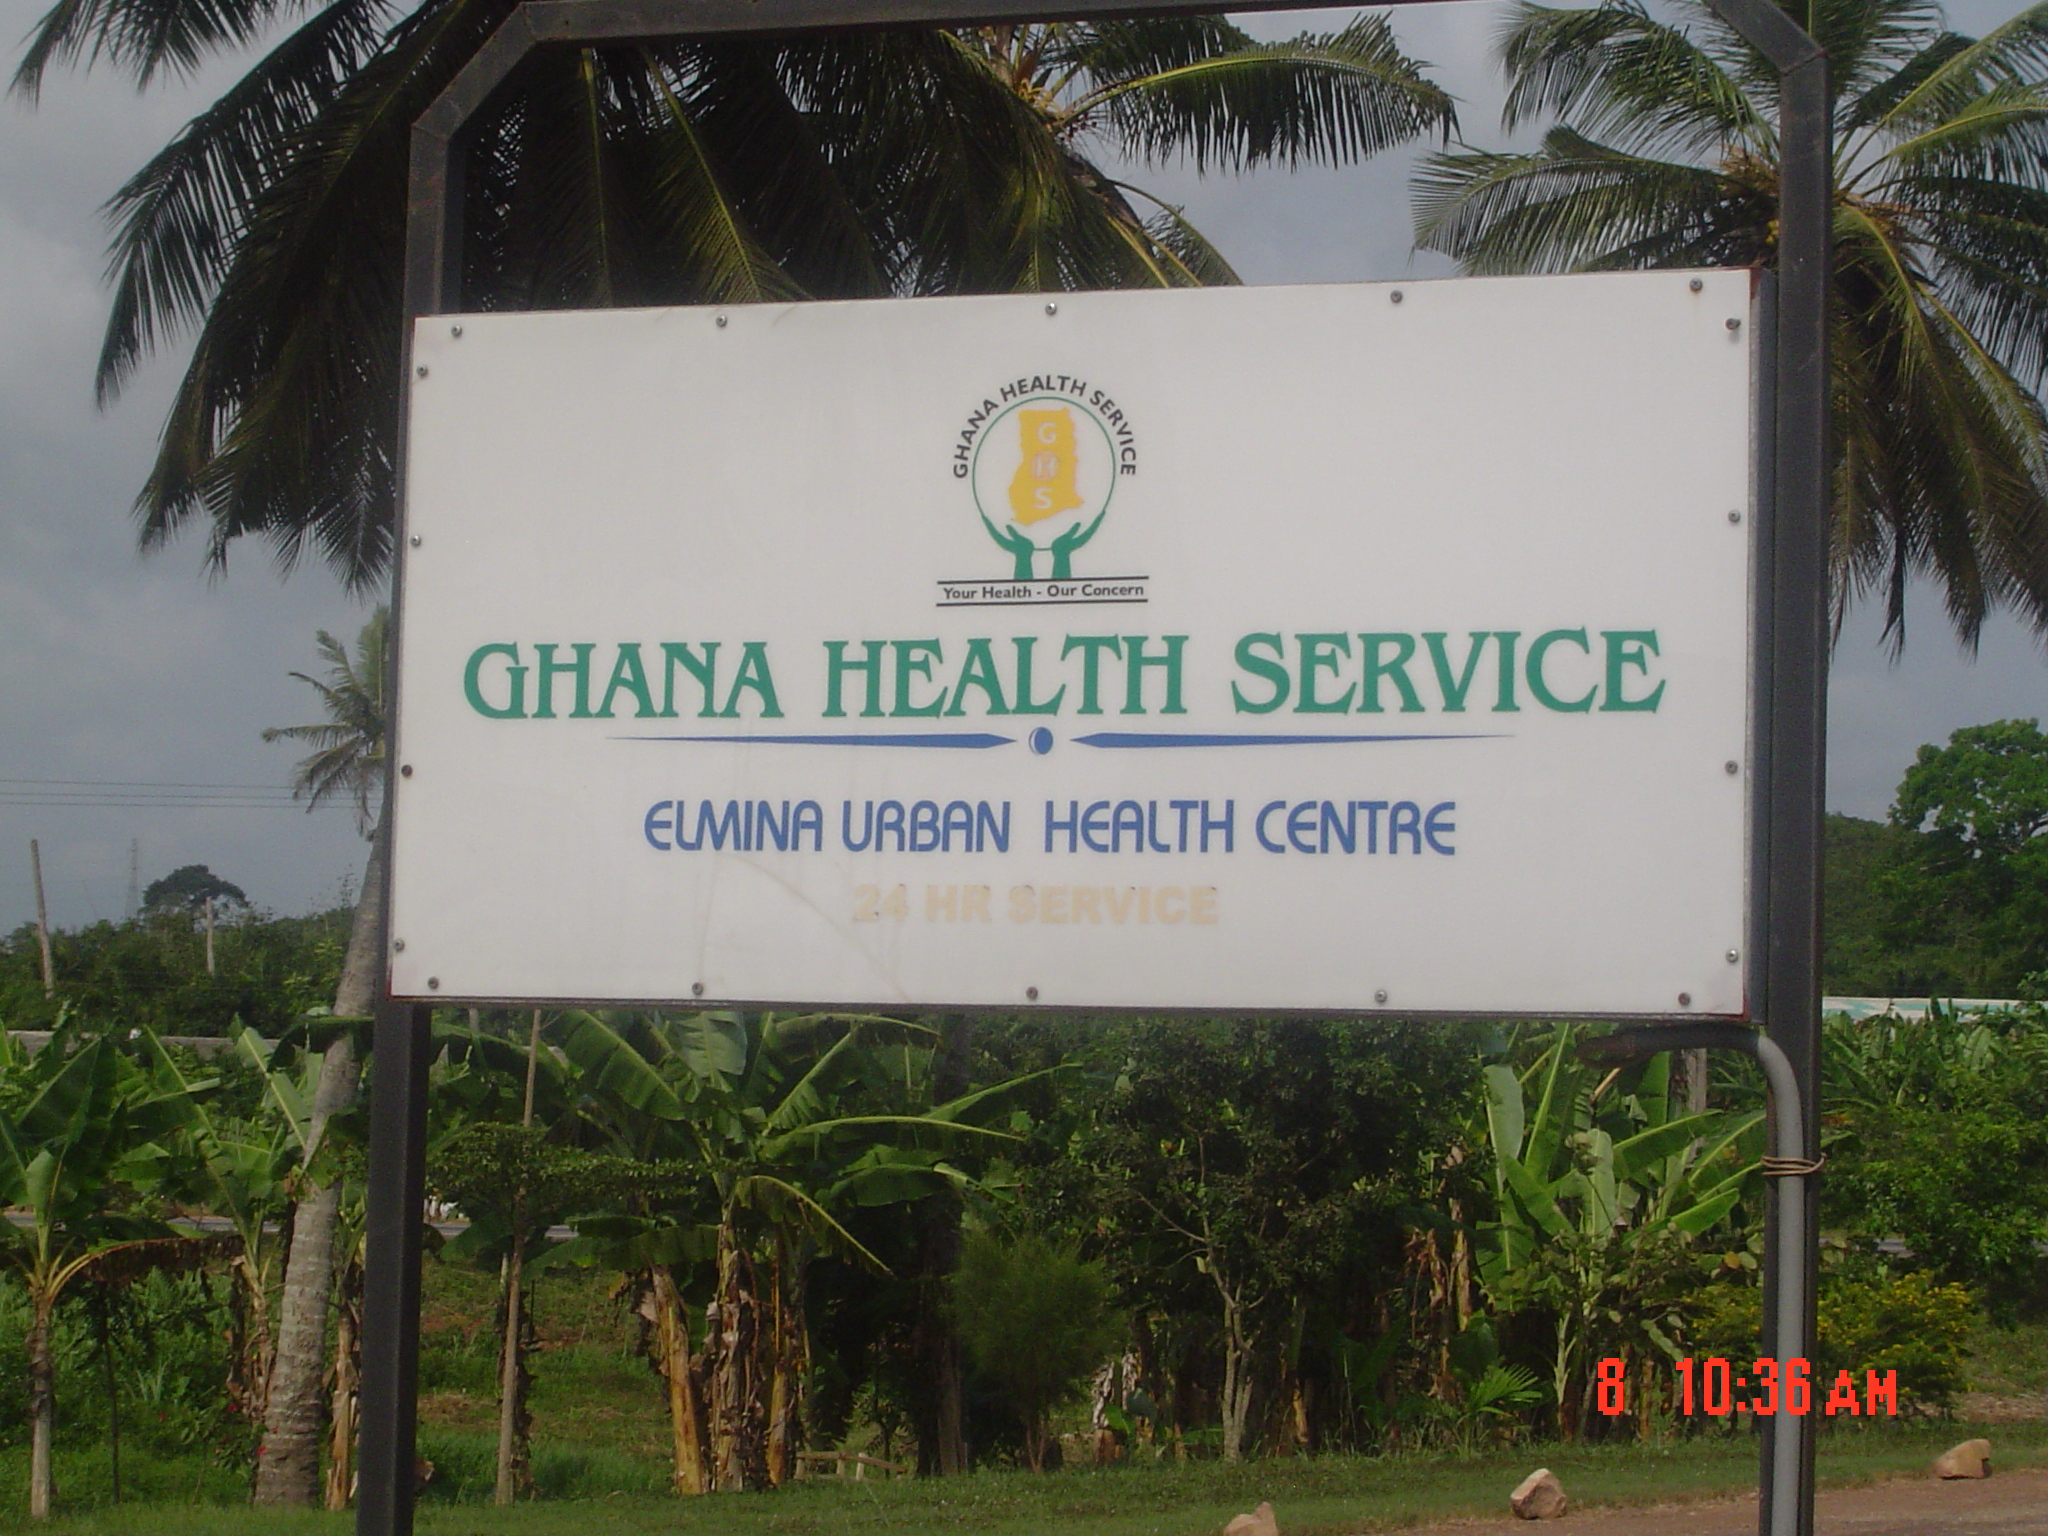 Elmina Urban Health Center Sign Board